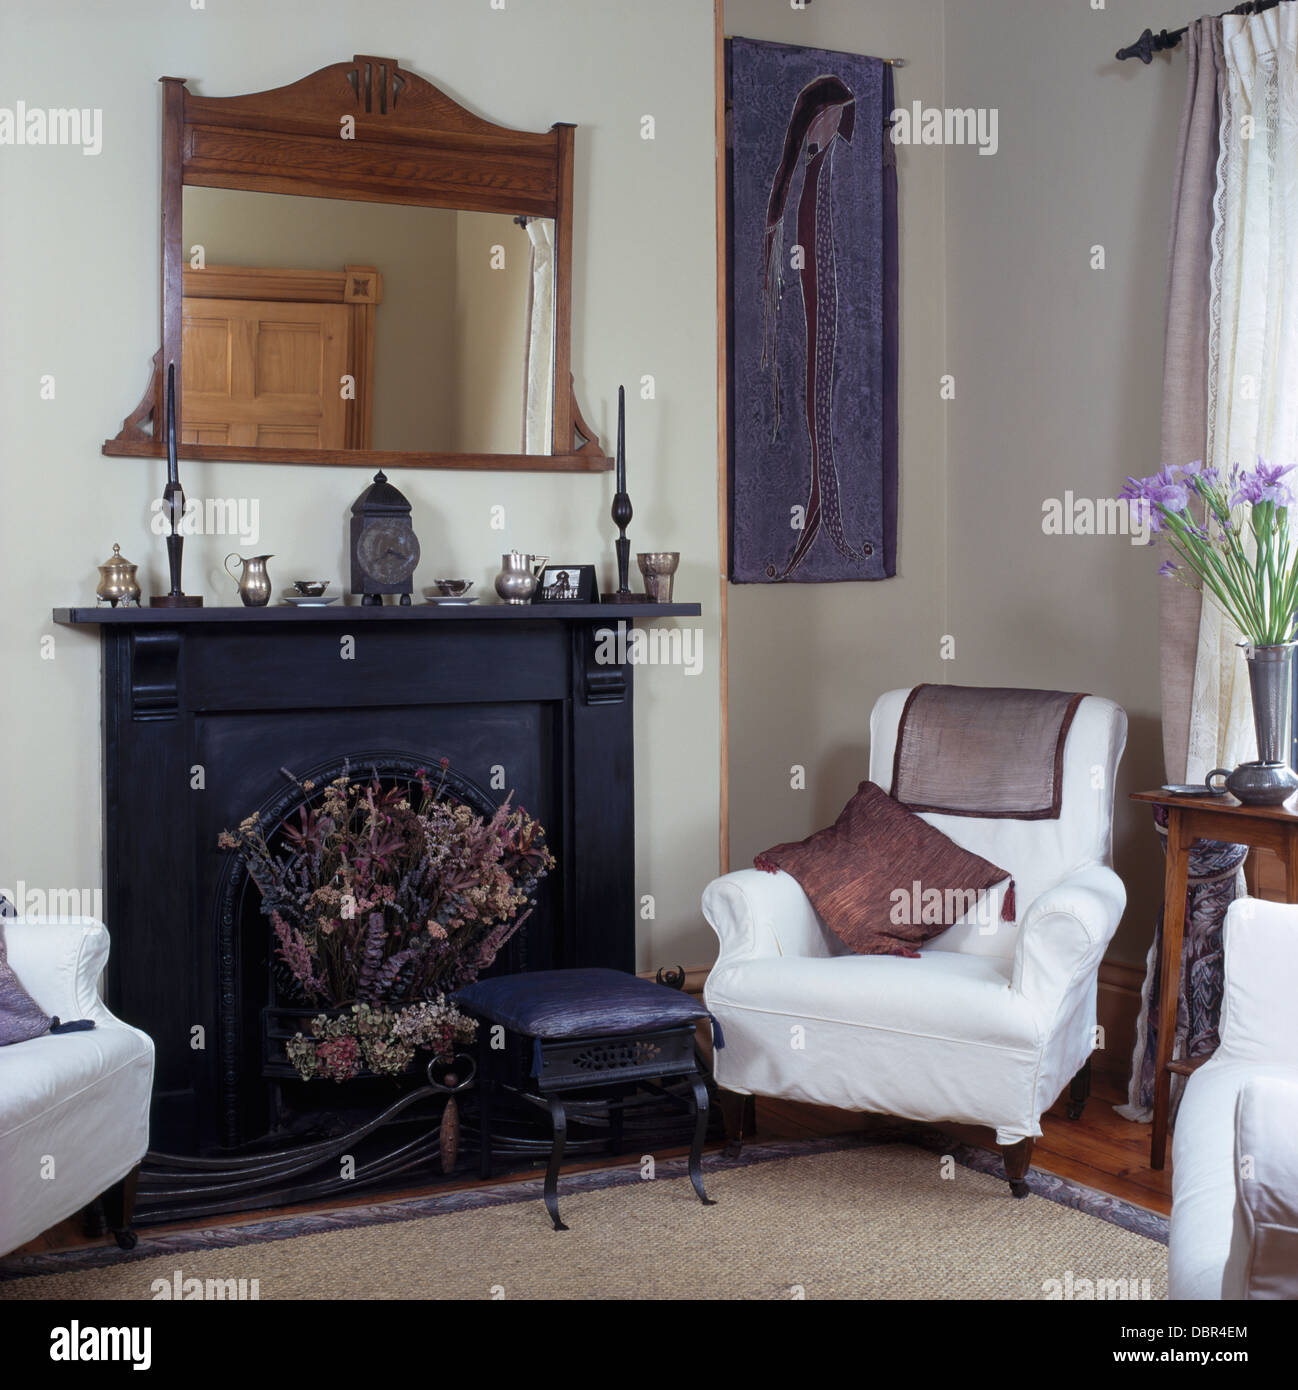 Edwardian Wood Framed Mirror Above Black Fireplace In Small White Living Room With Loose Cover On Armchair